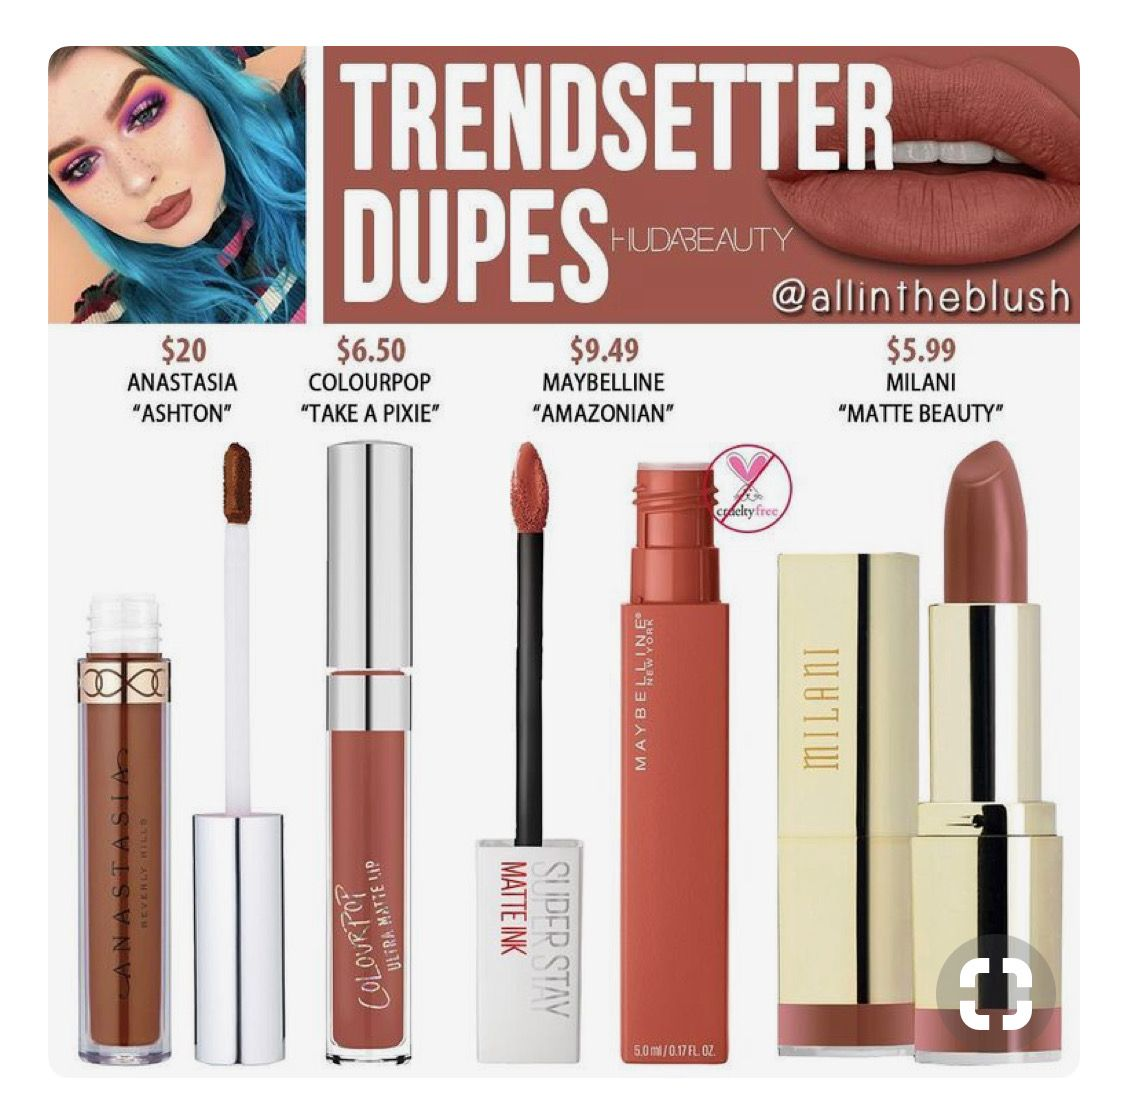 Pin by Jessamine Coral on DUPES ️ Makeup dupes, Lipstick